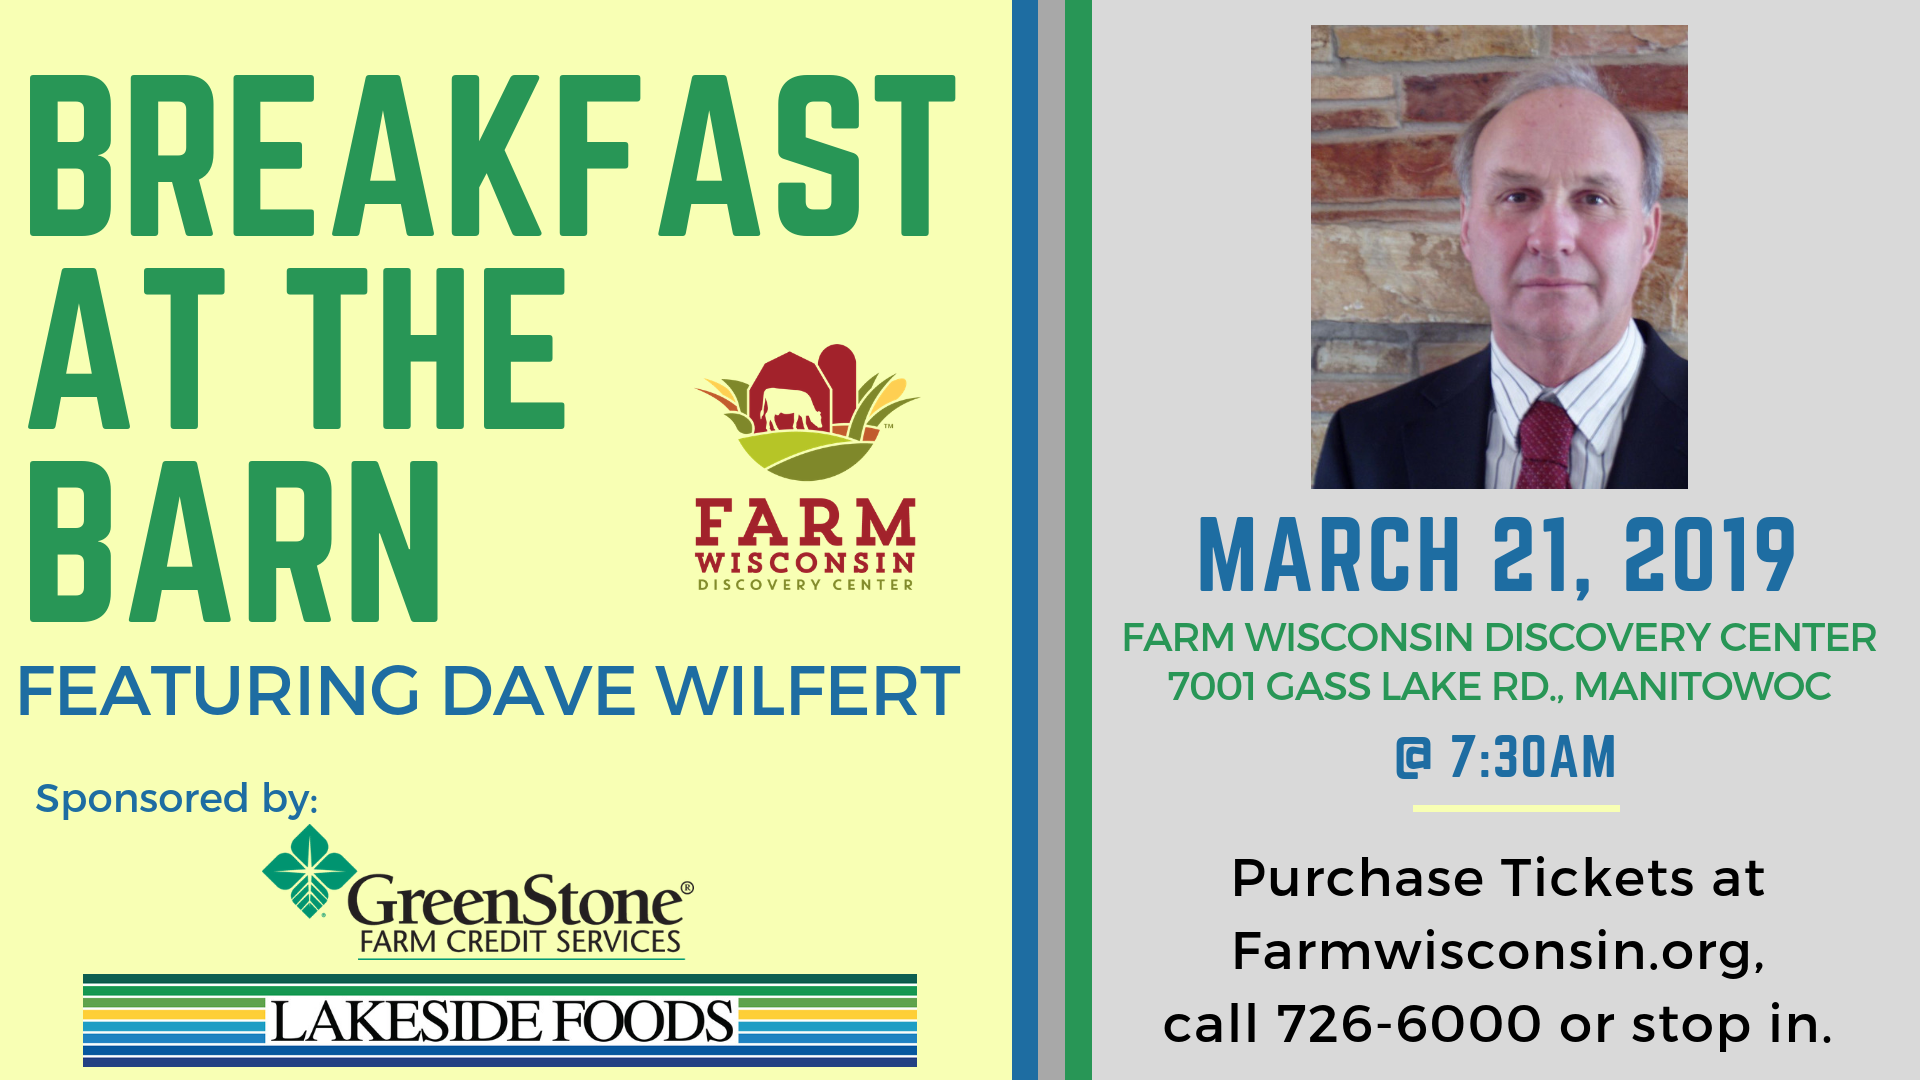 Breakfast at the Barn featuring Dave Wilfert